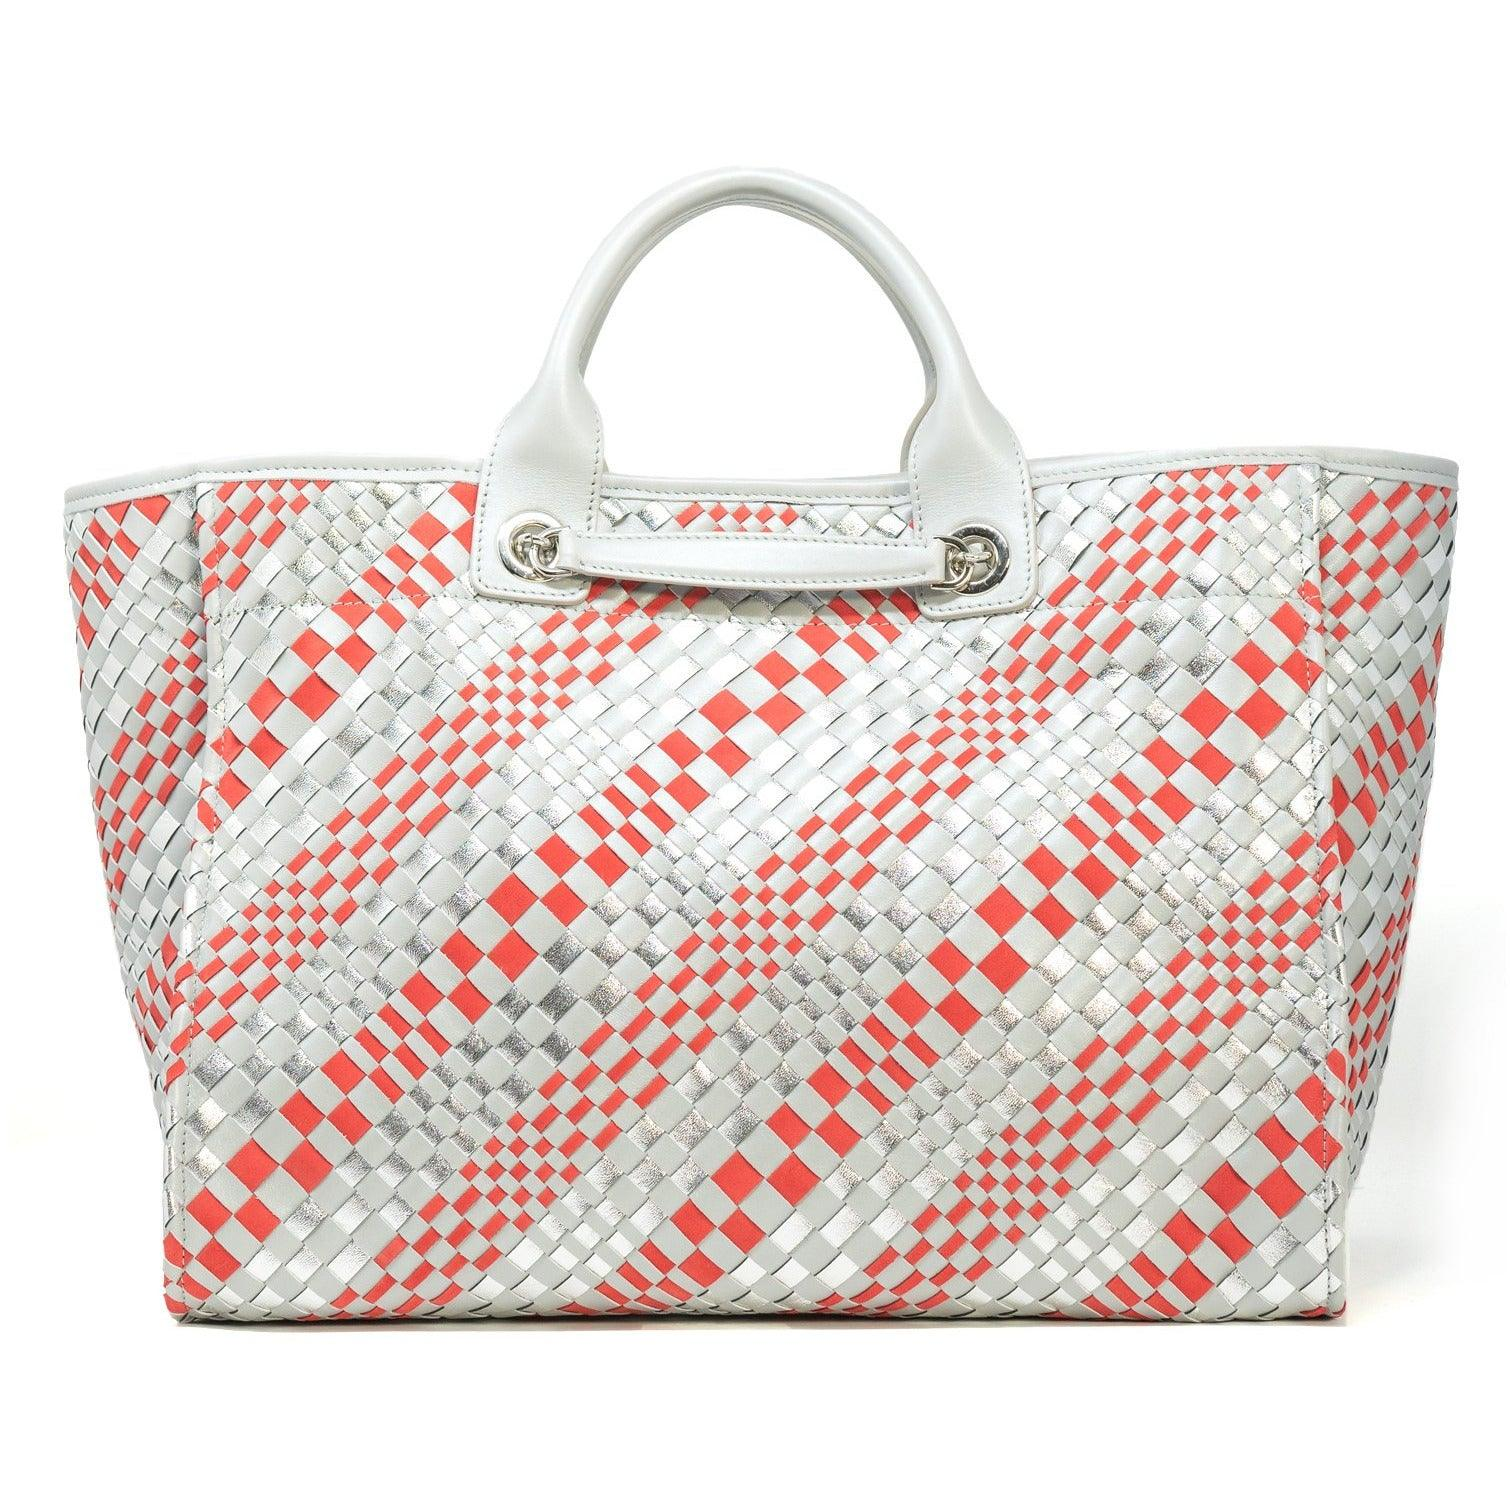 The Hamptons Large Intrecciato Leather Shopping Bag in Pearl Grey